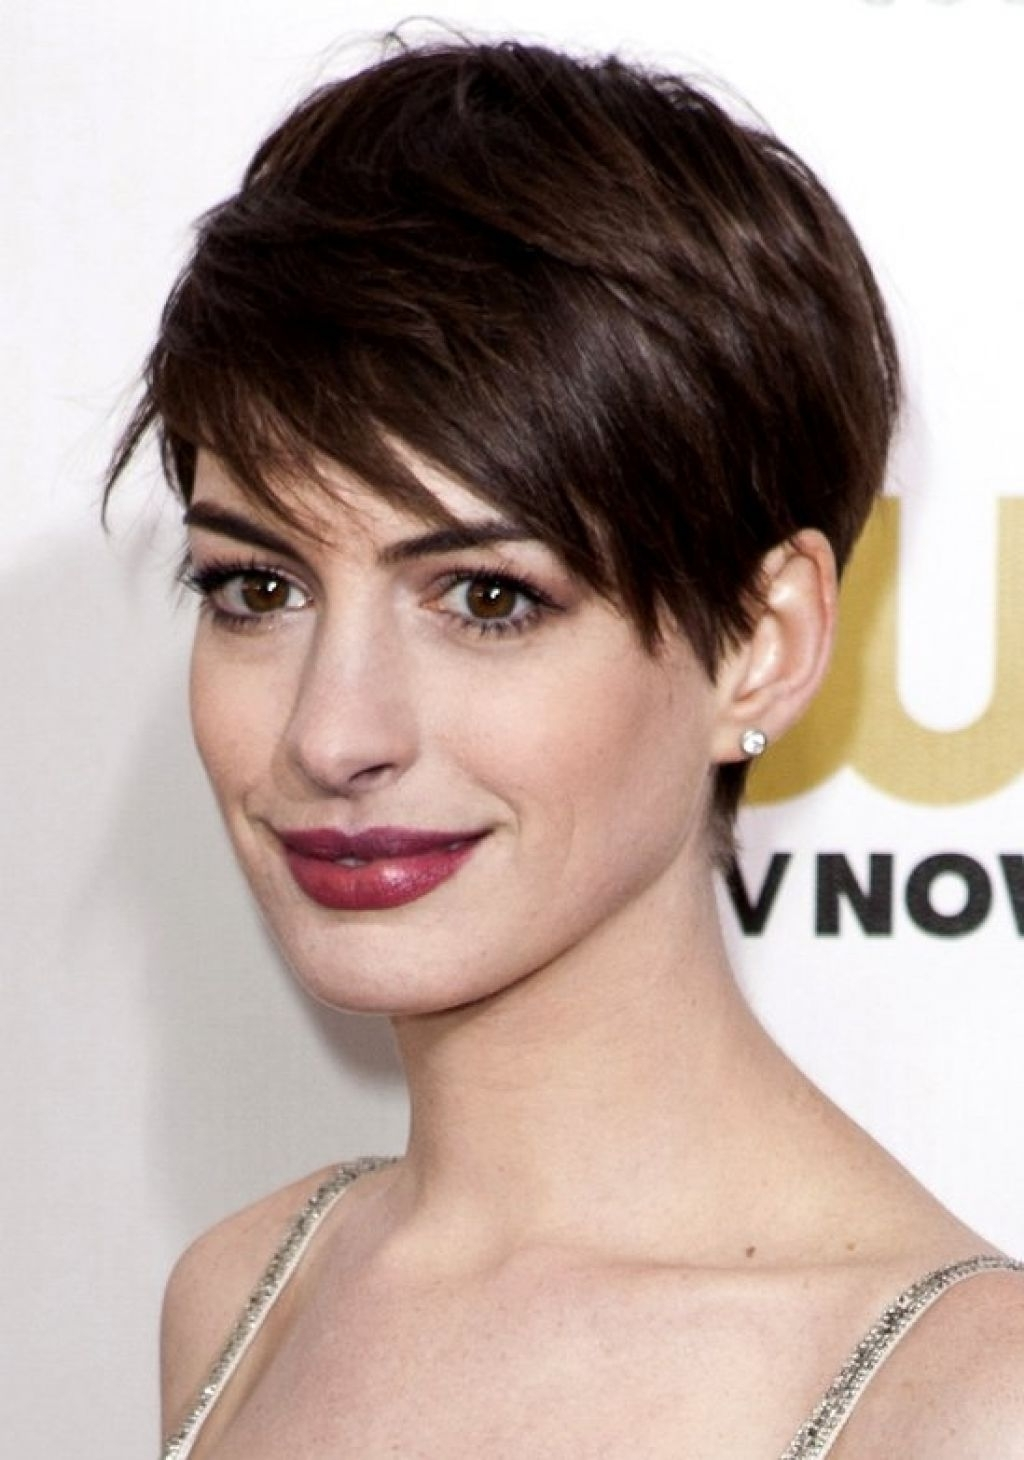 Beautiful Pixie Hairstyles For Thin Hair Photos – Styles & Ideas Within Current Long Pixie Hairstyles For Thin Hair (View 6 of 15)